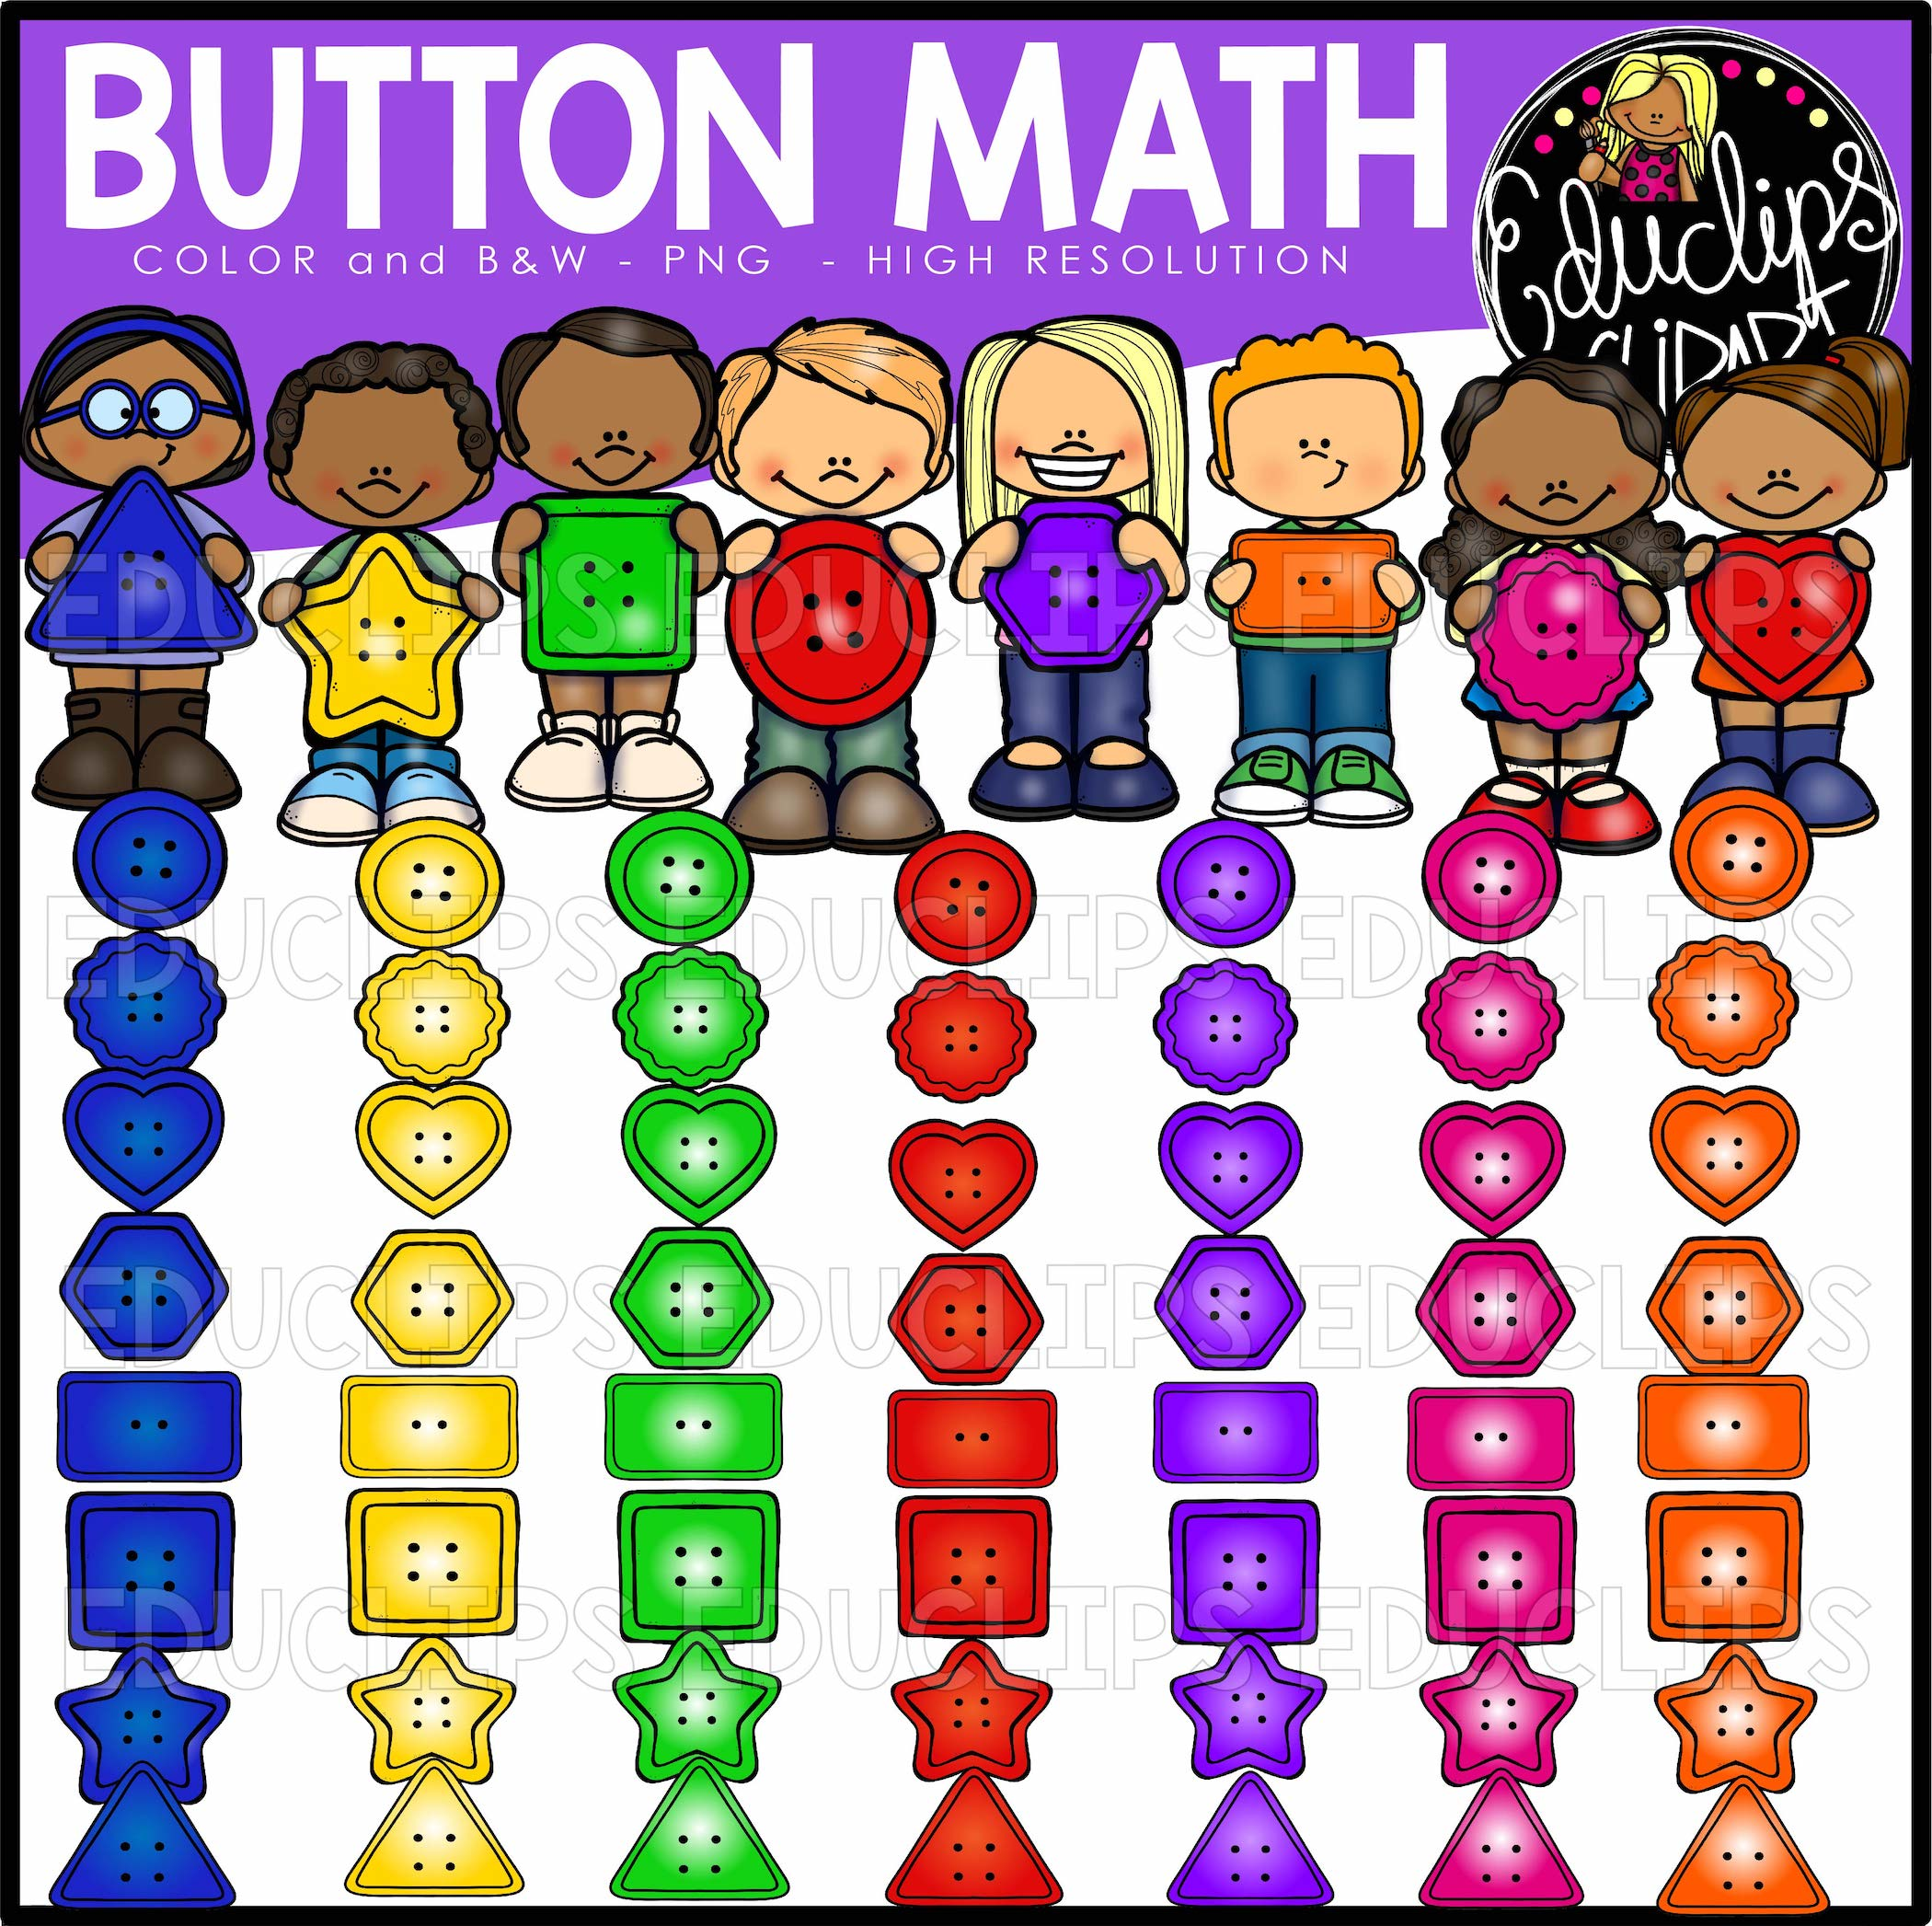 math manipulatives clip art bundle (color and b&w) - welcome to